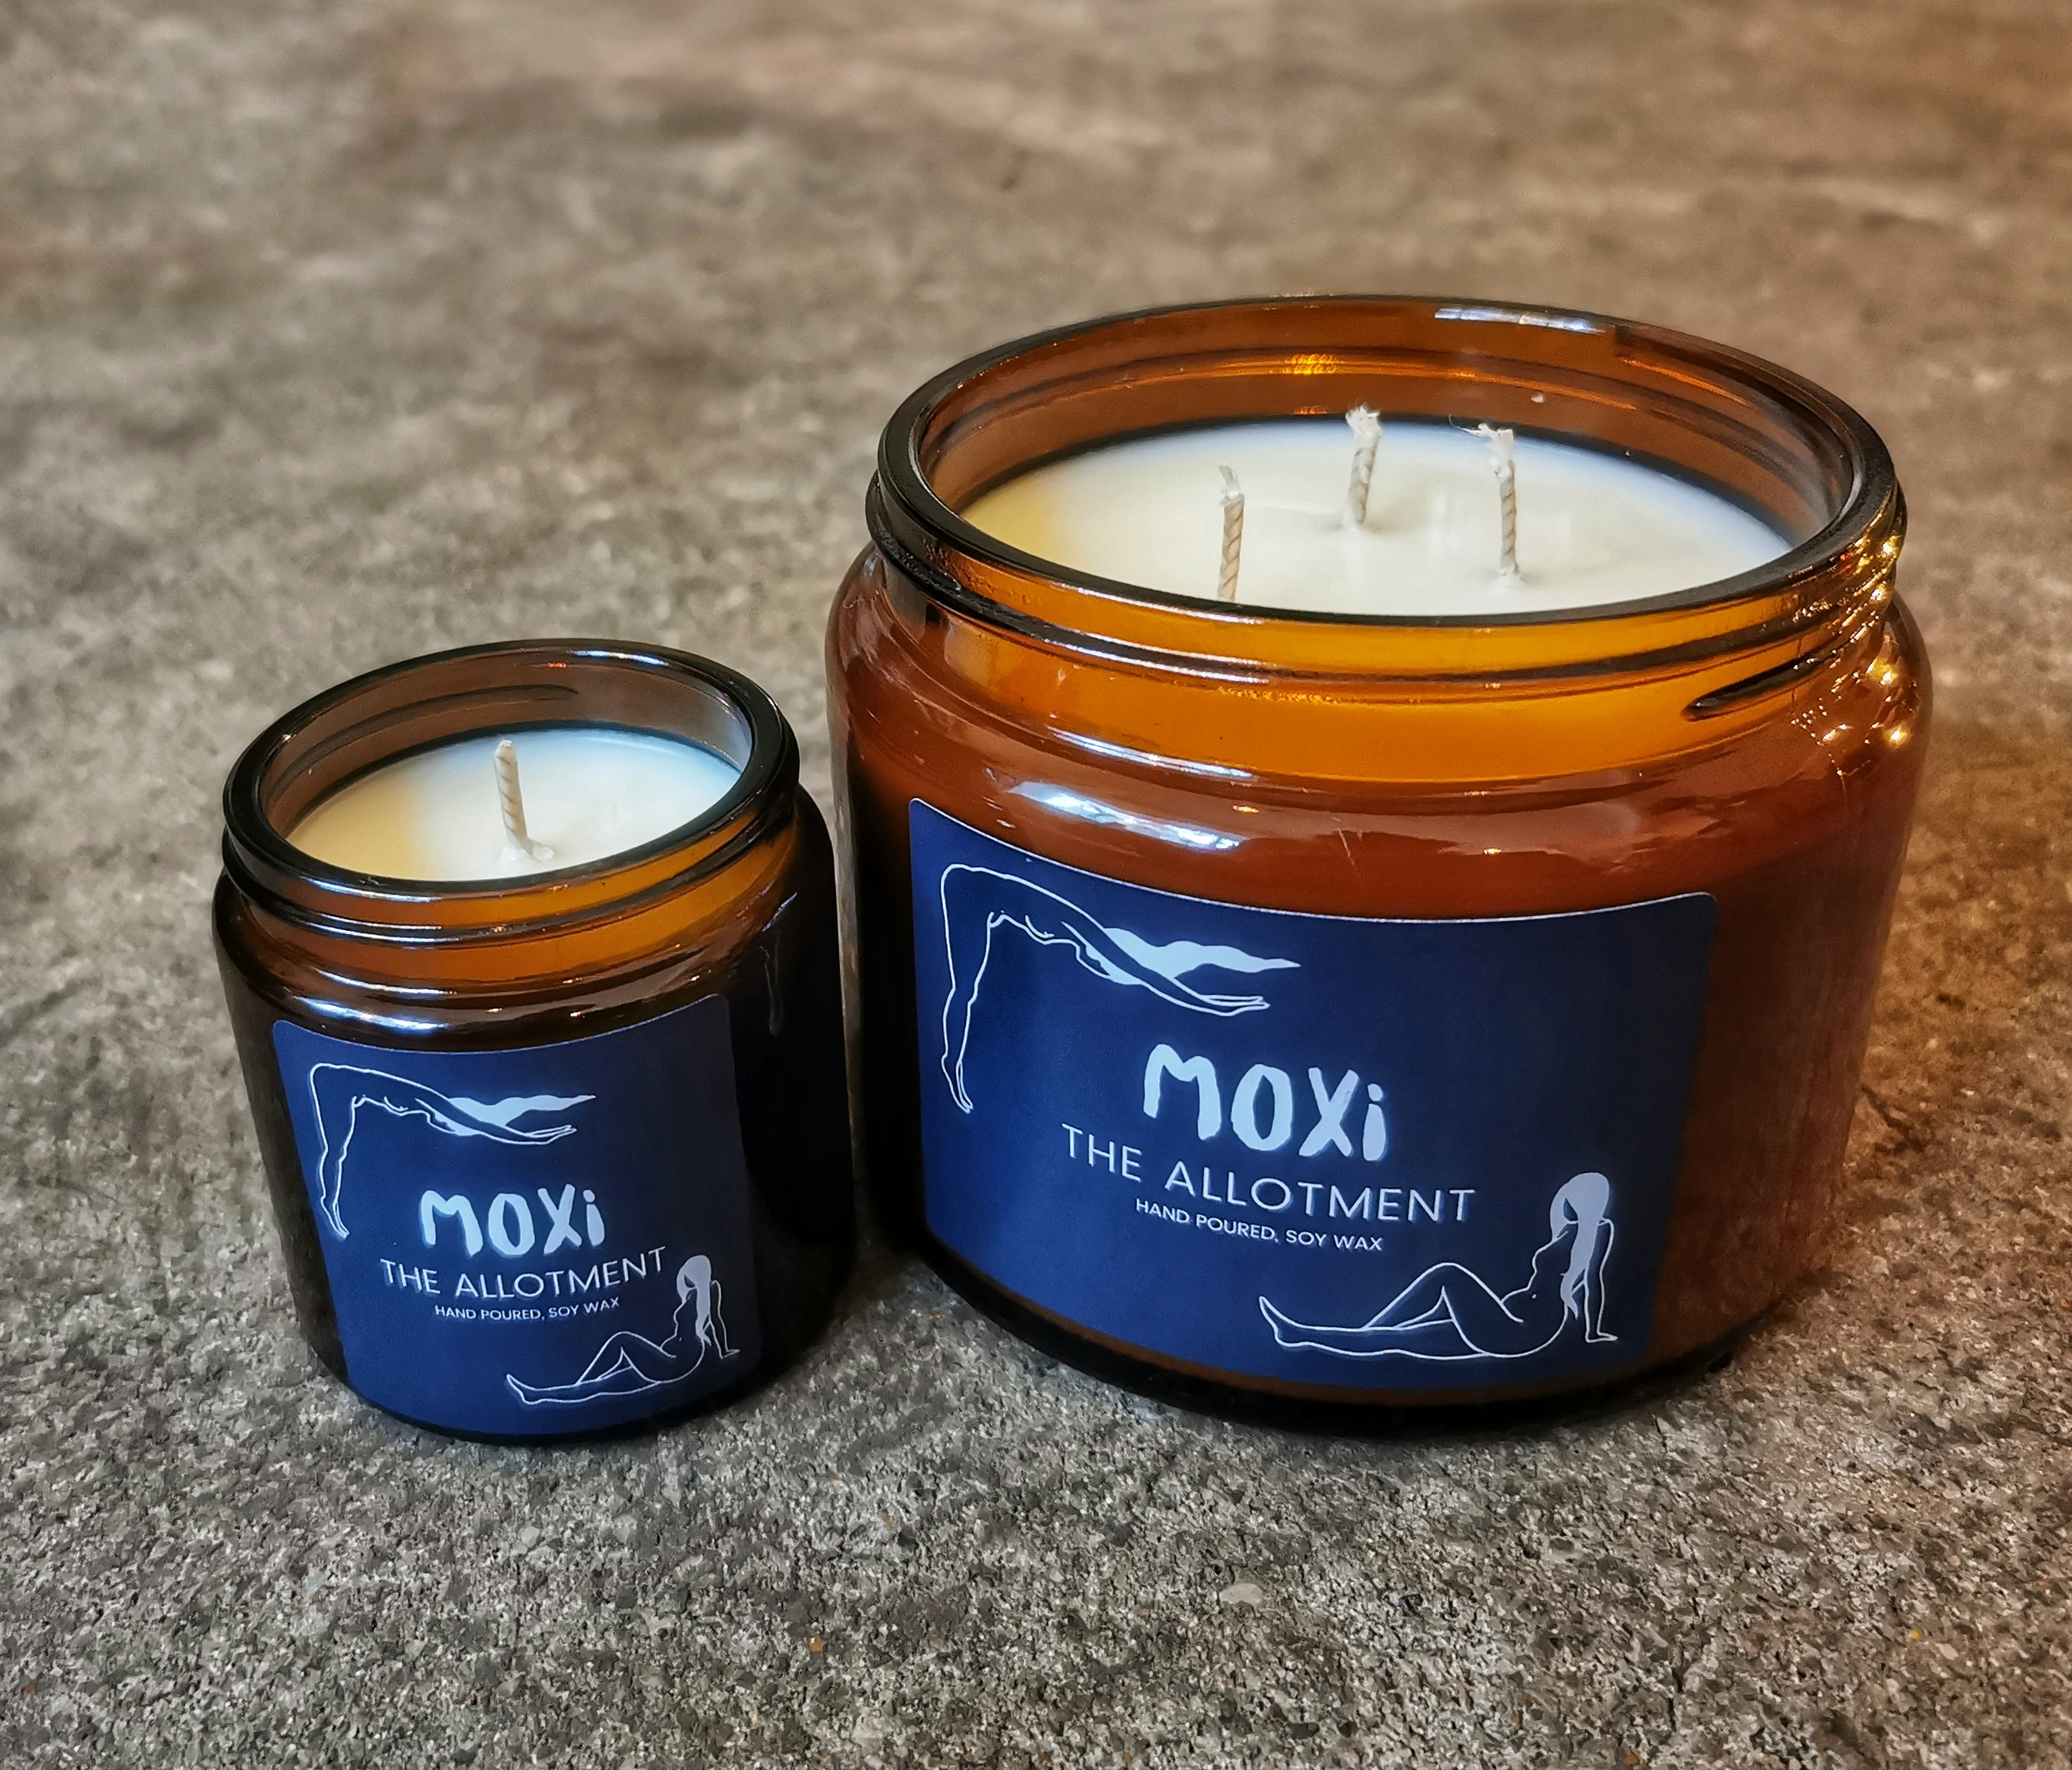 Moxi Scented Candle - The Allotment